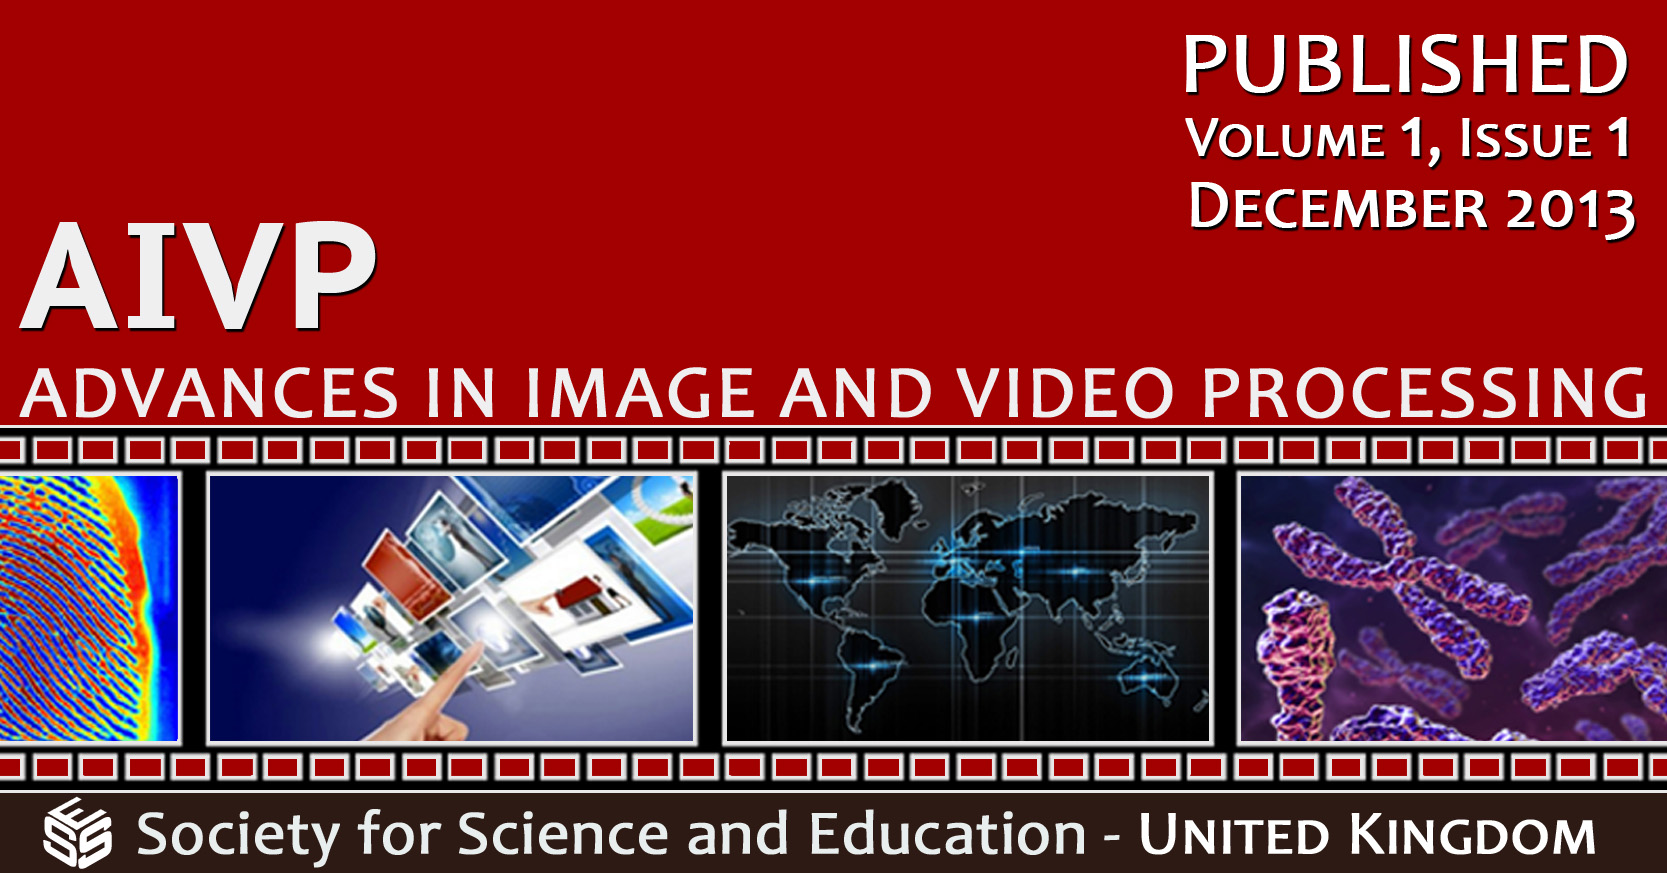 Advances in Image and Video Procesing